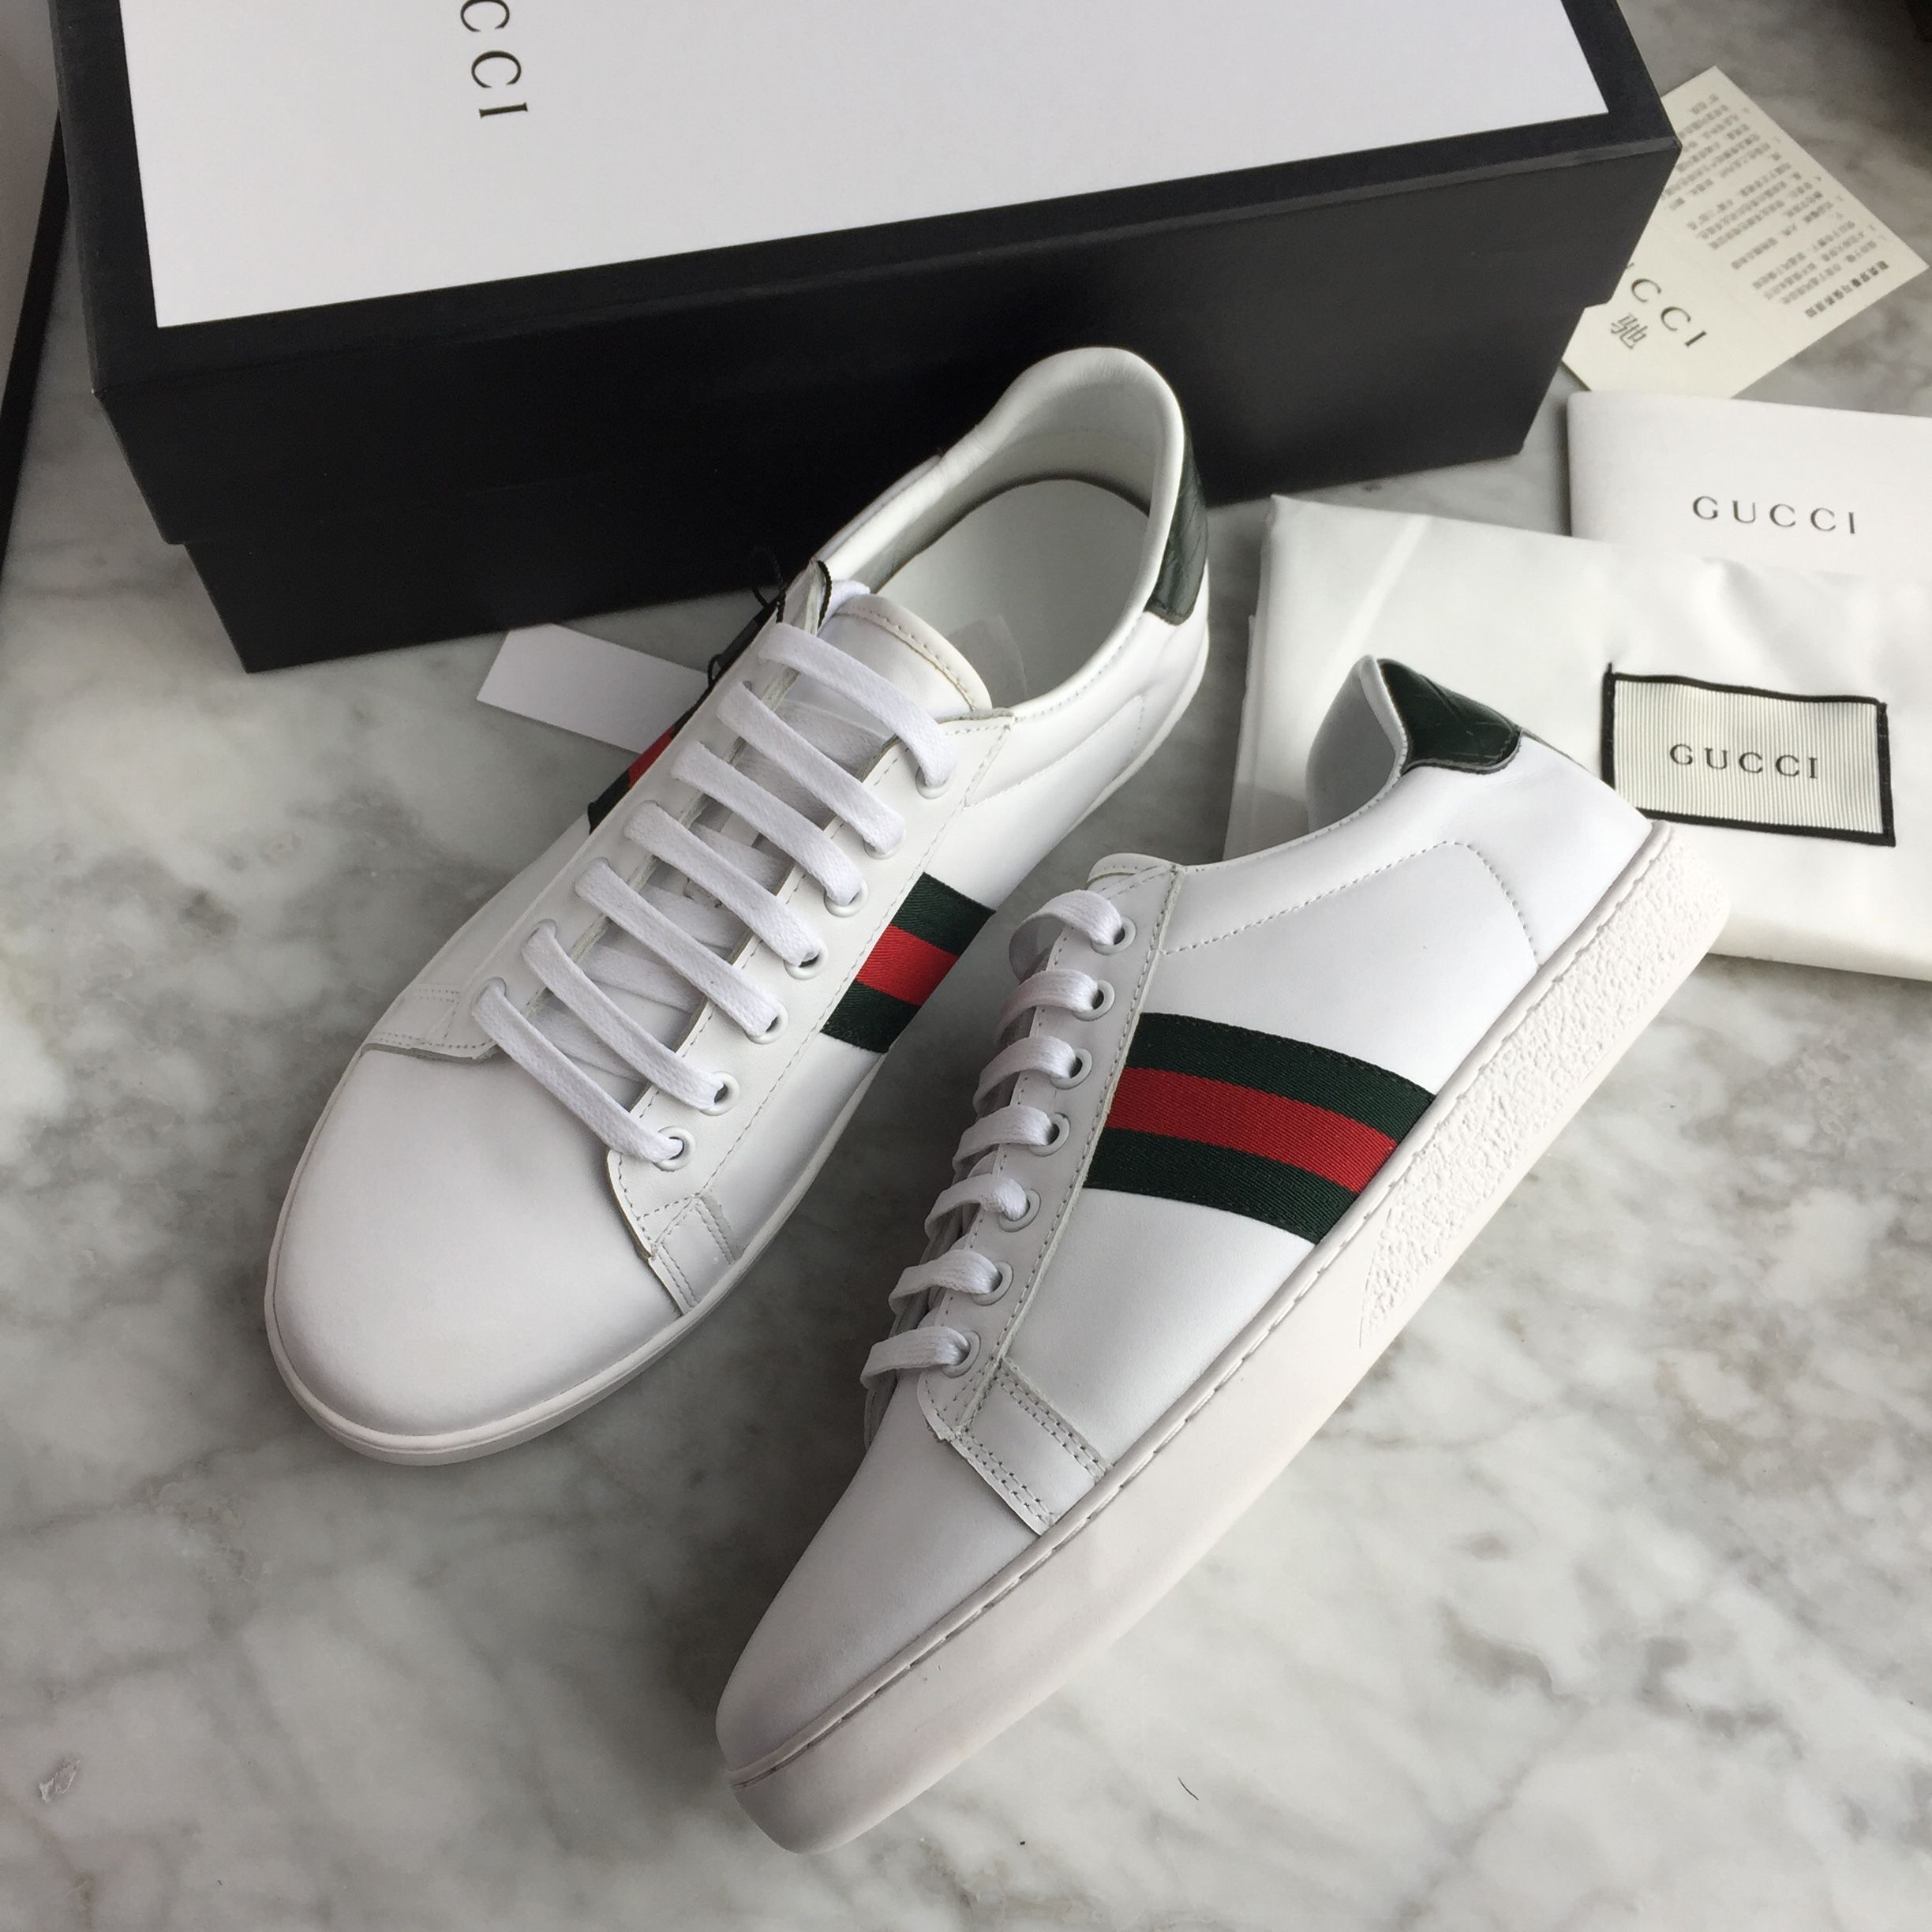 gucci unisex woman man shoes white sneakers mens